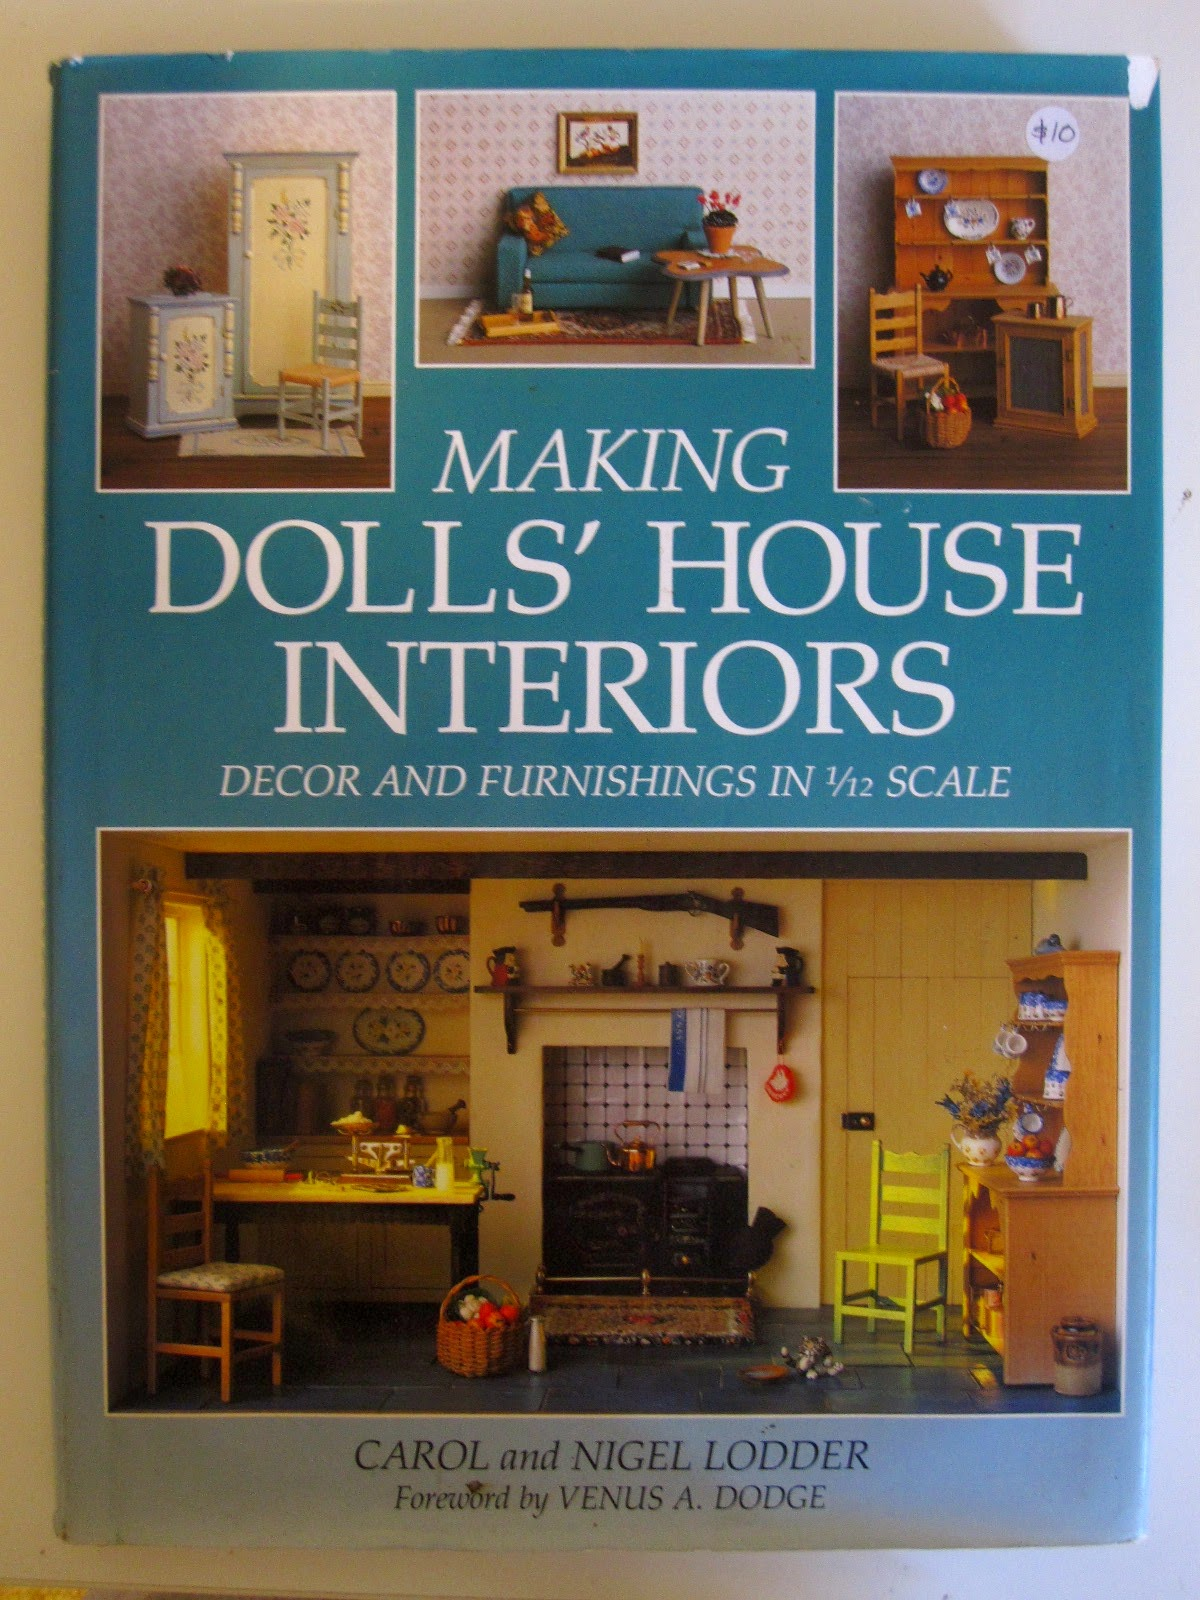 'Making dolls' house interiors' book